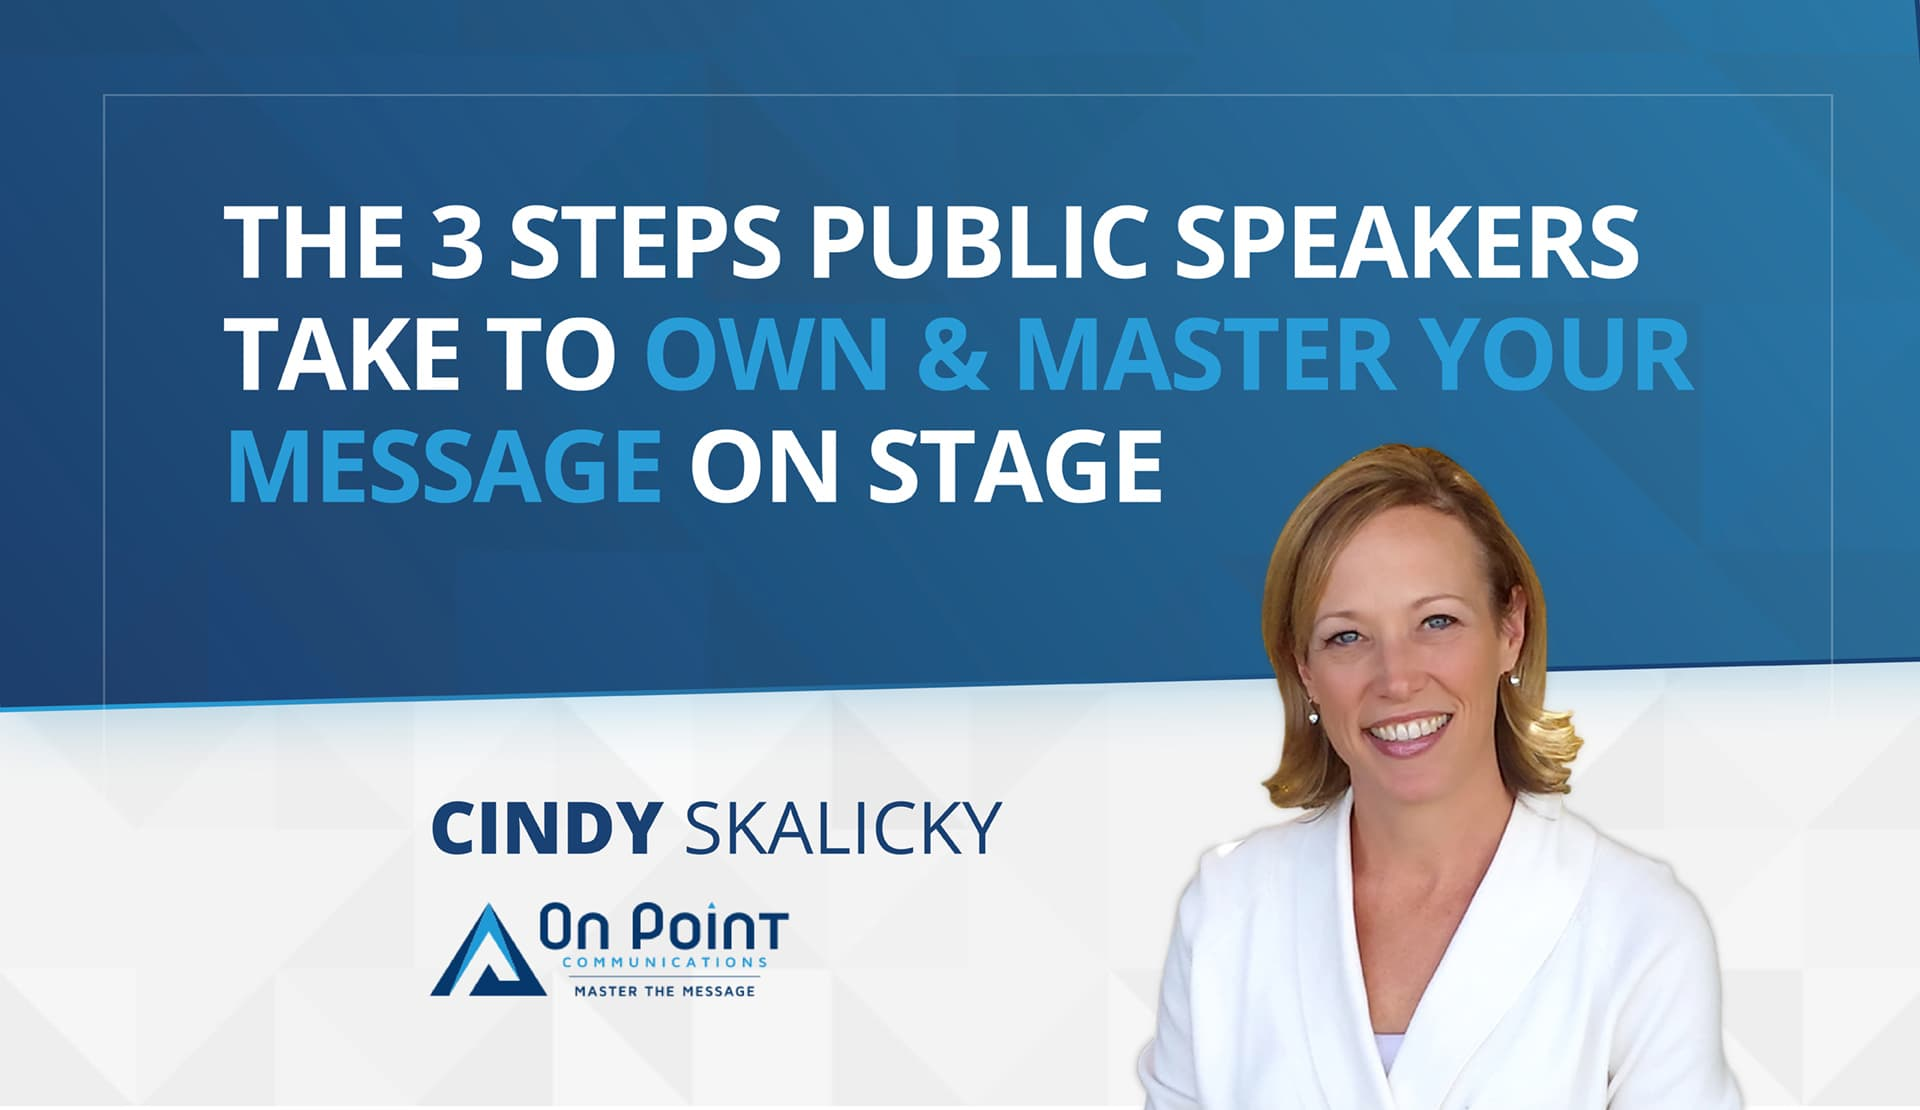 The 3 steps public speakers take to own & master your message on stage